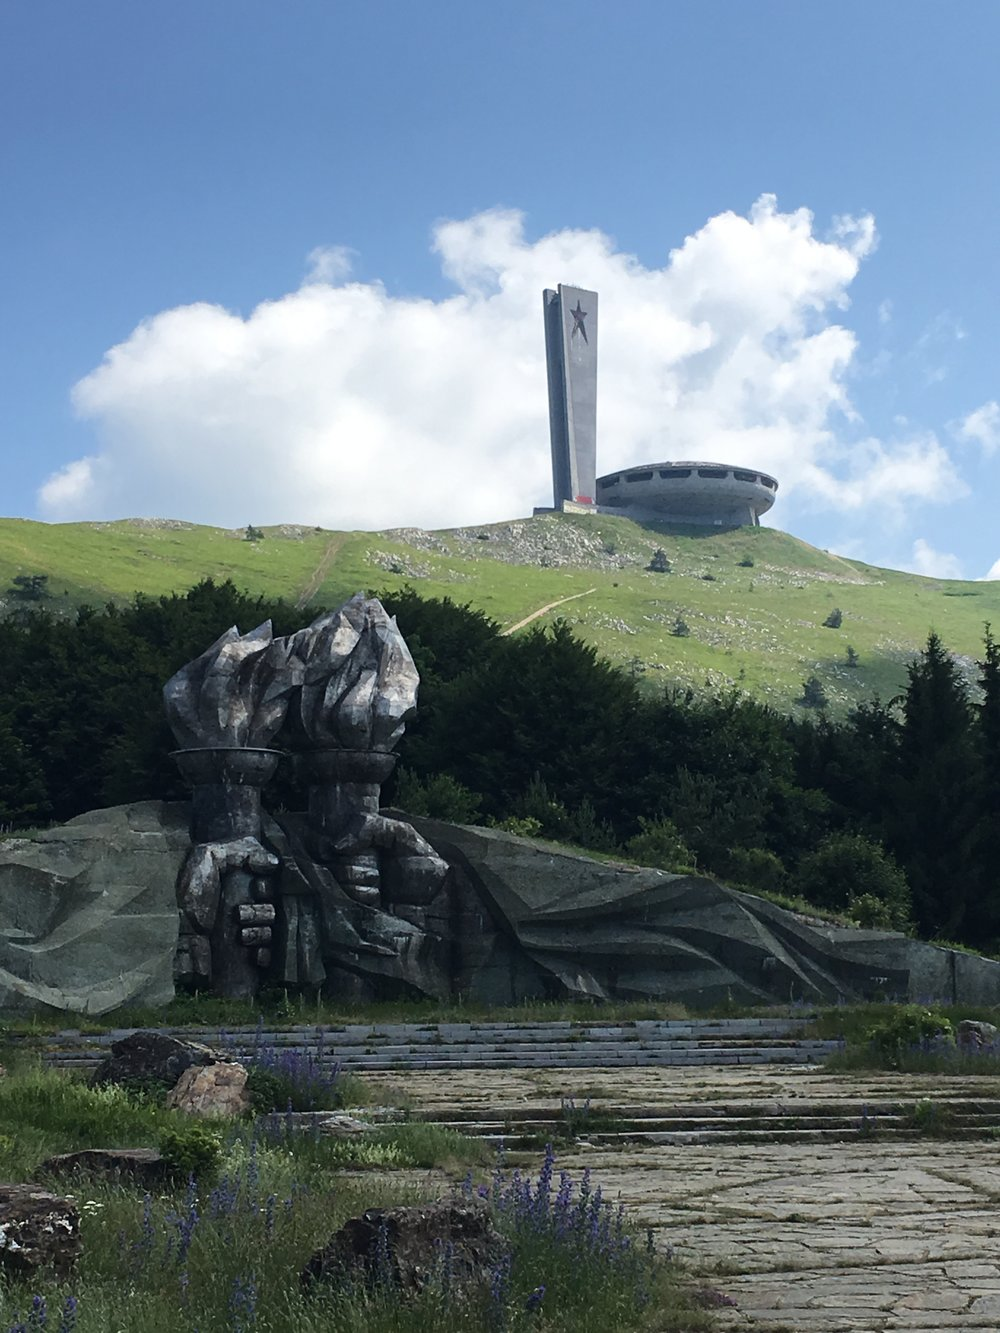 Things to do in Plovdiv, The UFO building, Buzludzha, it's a day trip from Plovdiv